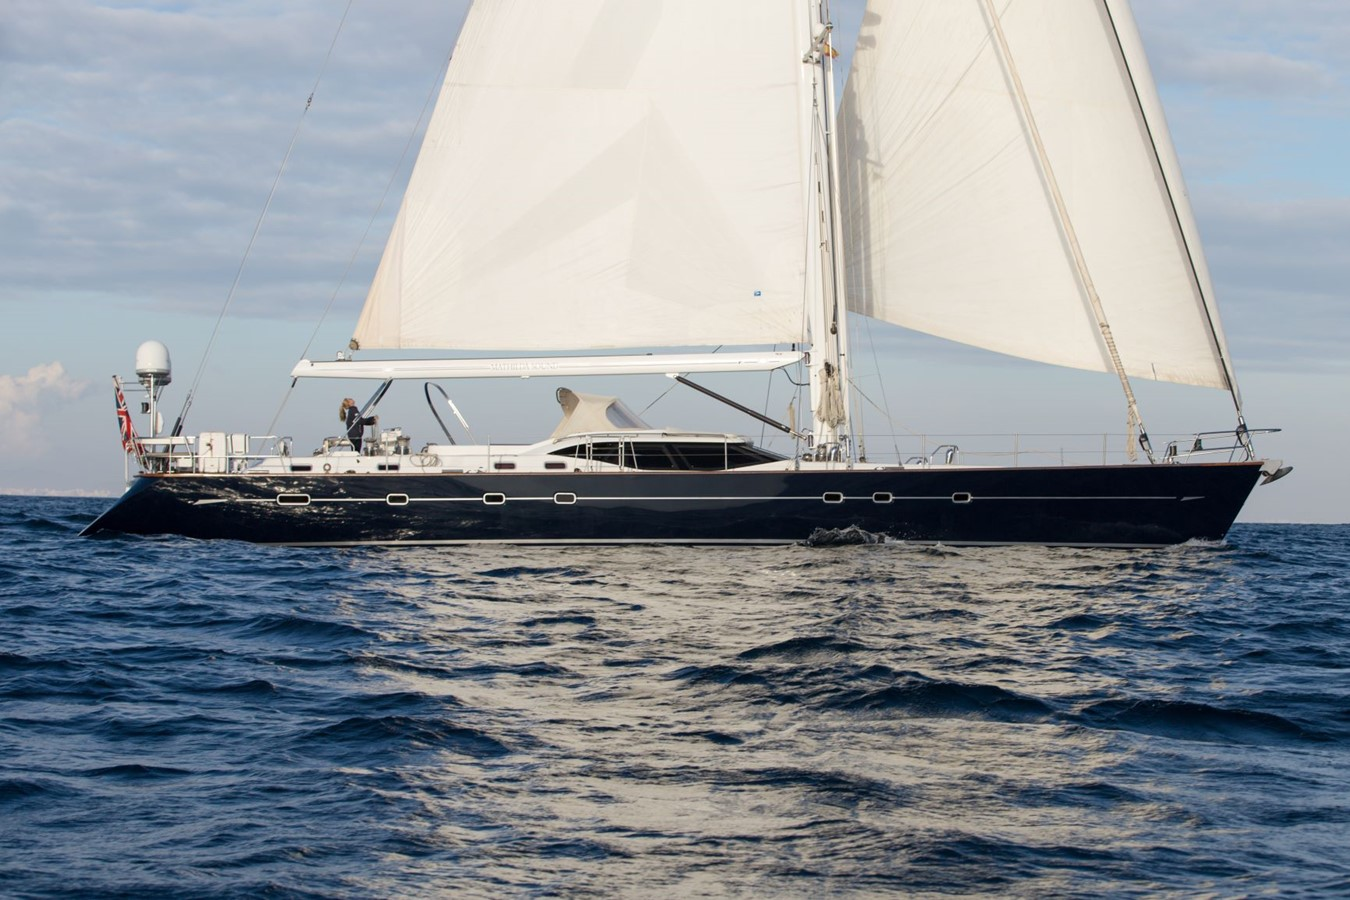 2010 OYSTER YACHTS Oyster 82 Cruising Sailboat 2485458